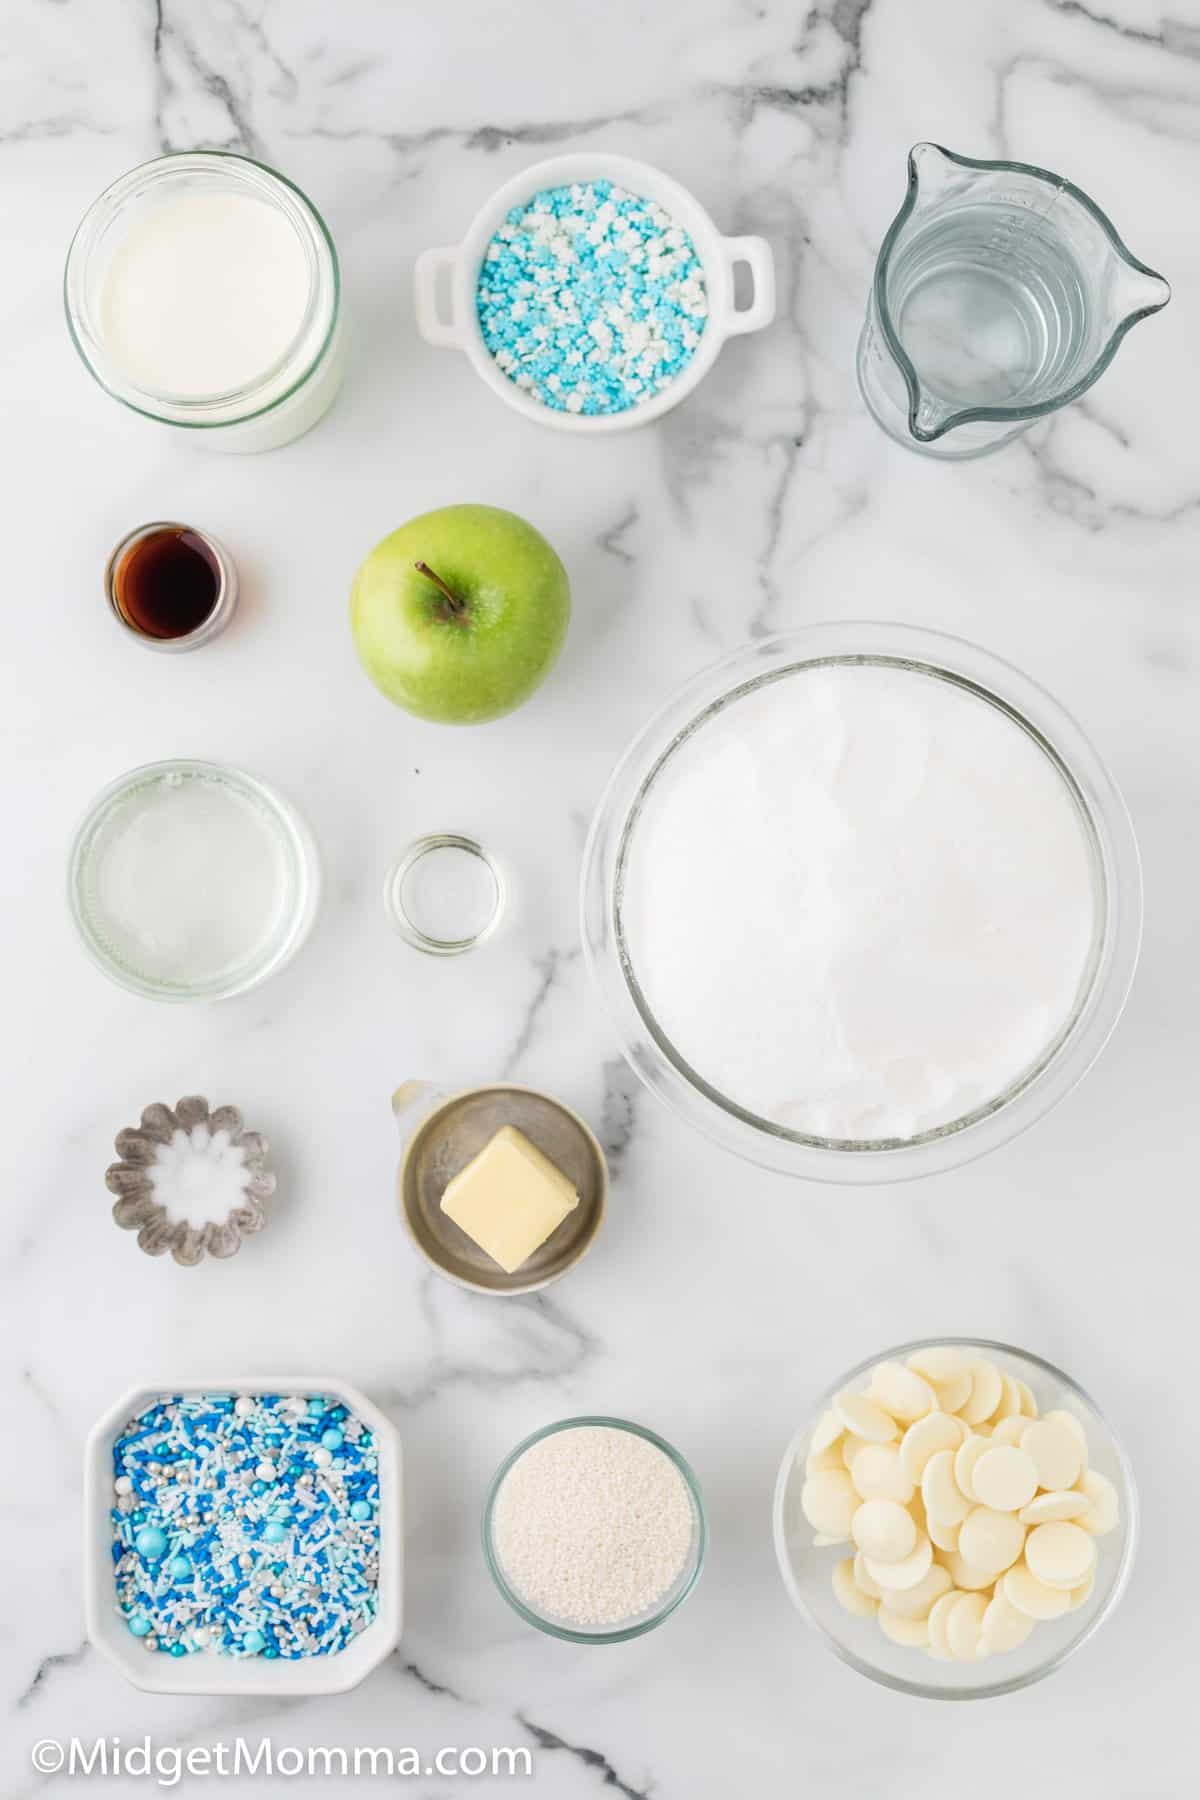 Frozen Themed White Chocolate Caramel Apples ingredients